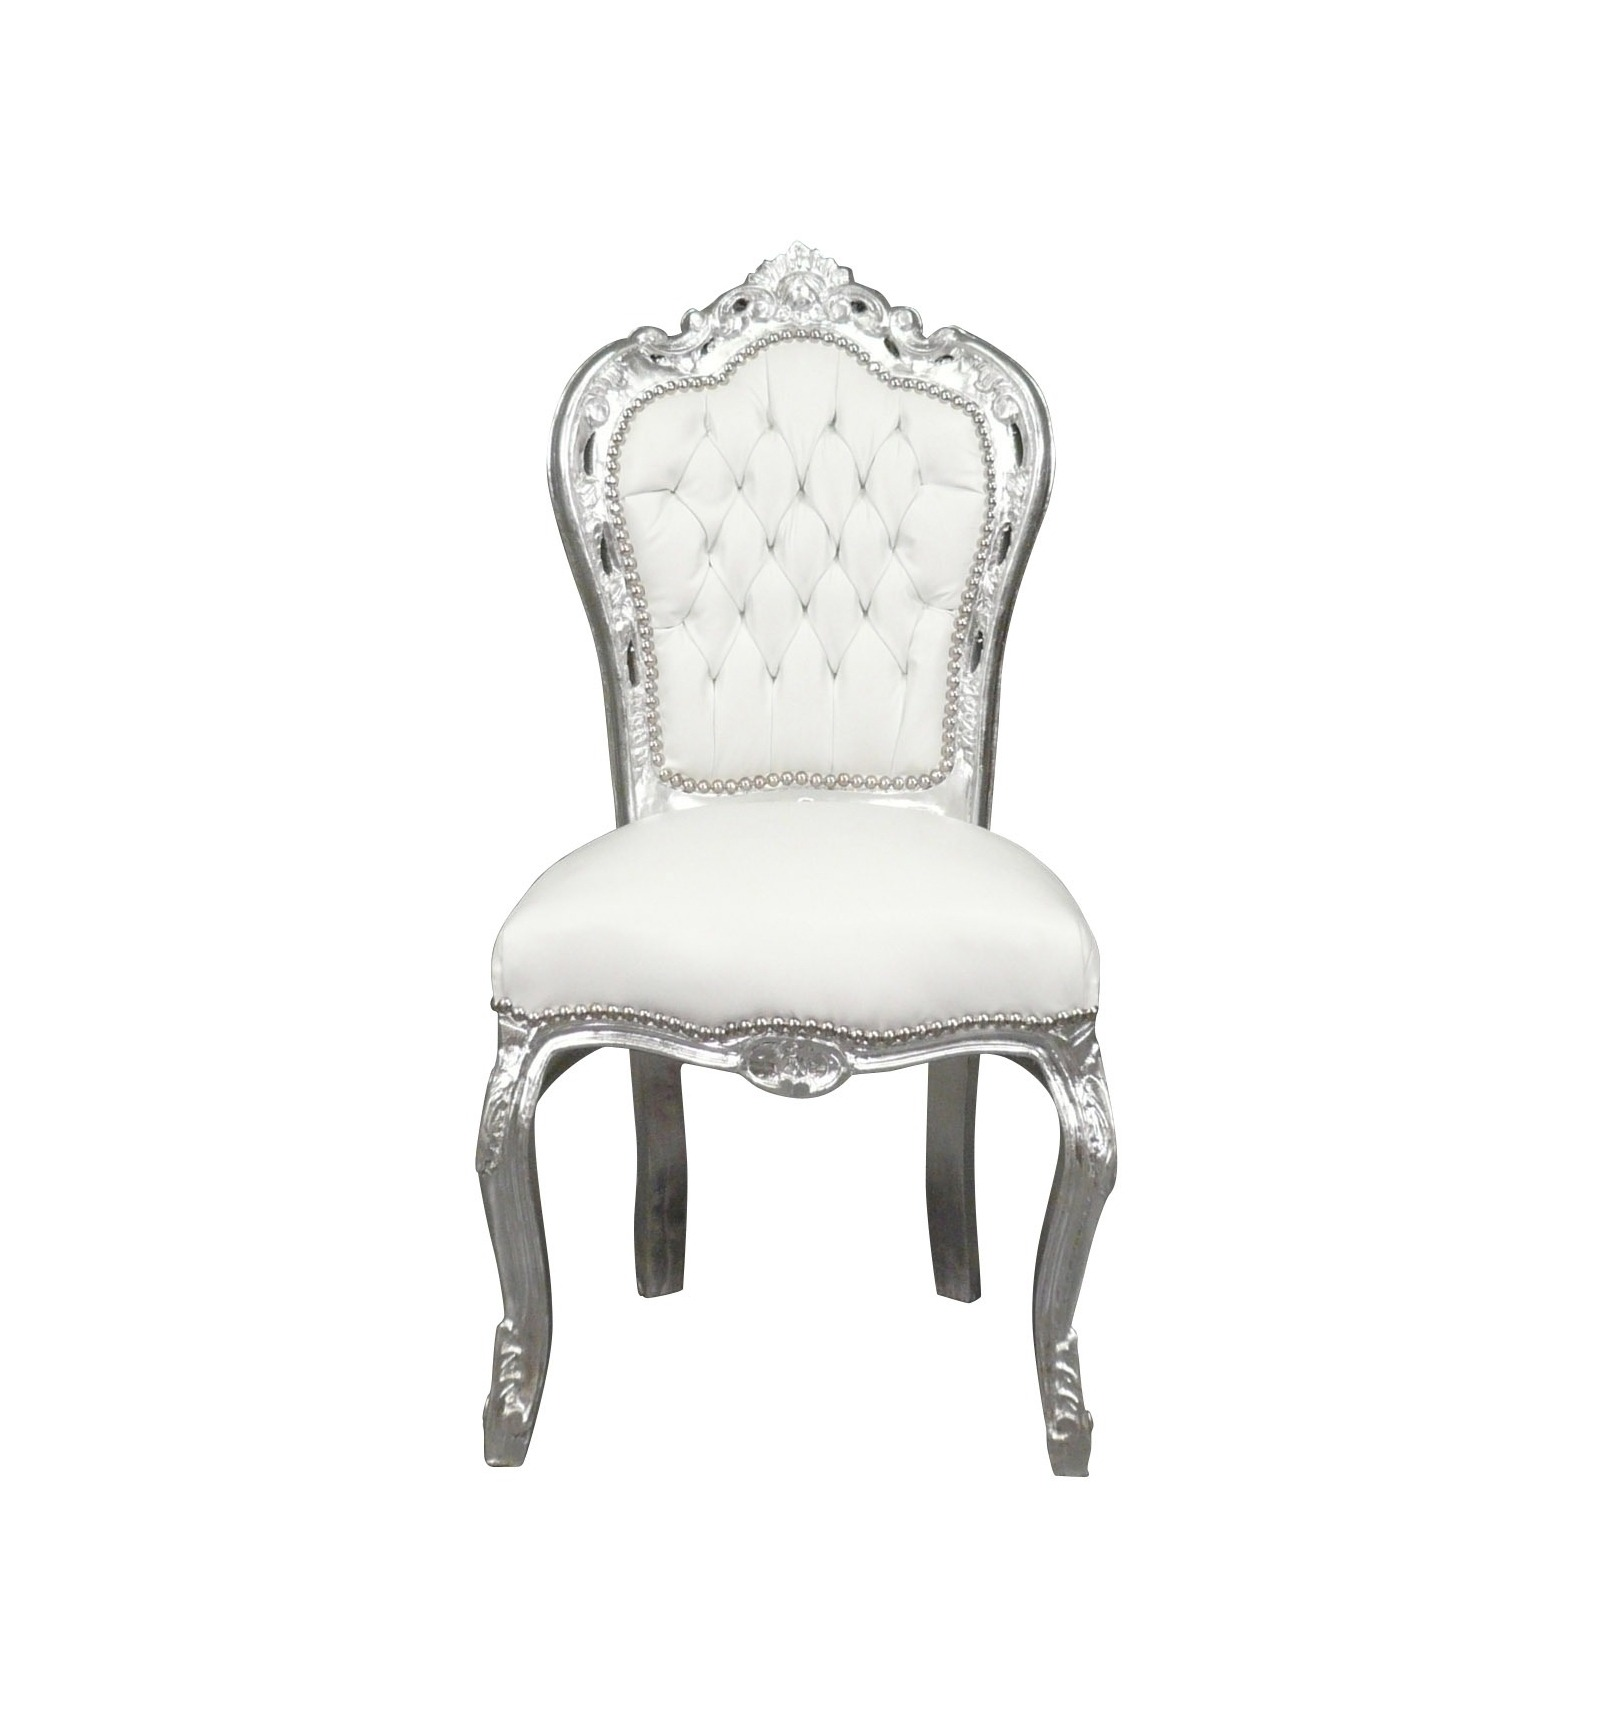 Chair baroque white chairs and baroque style furniture for - Chaise baroque argentee ...